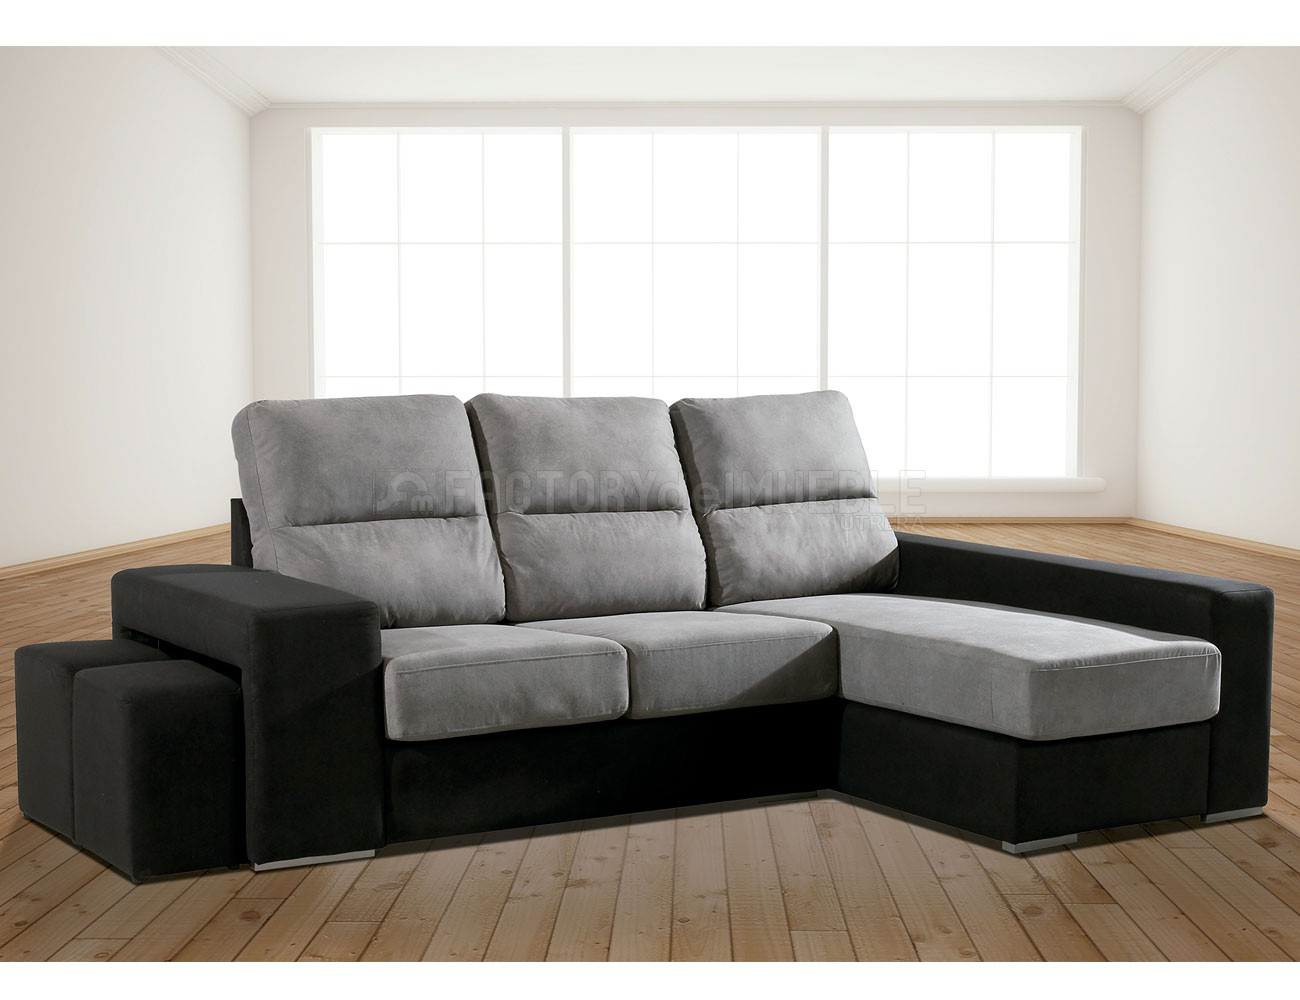 Sofa chaiselongue con dos pufs taburetes